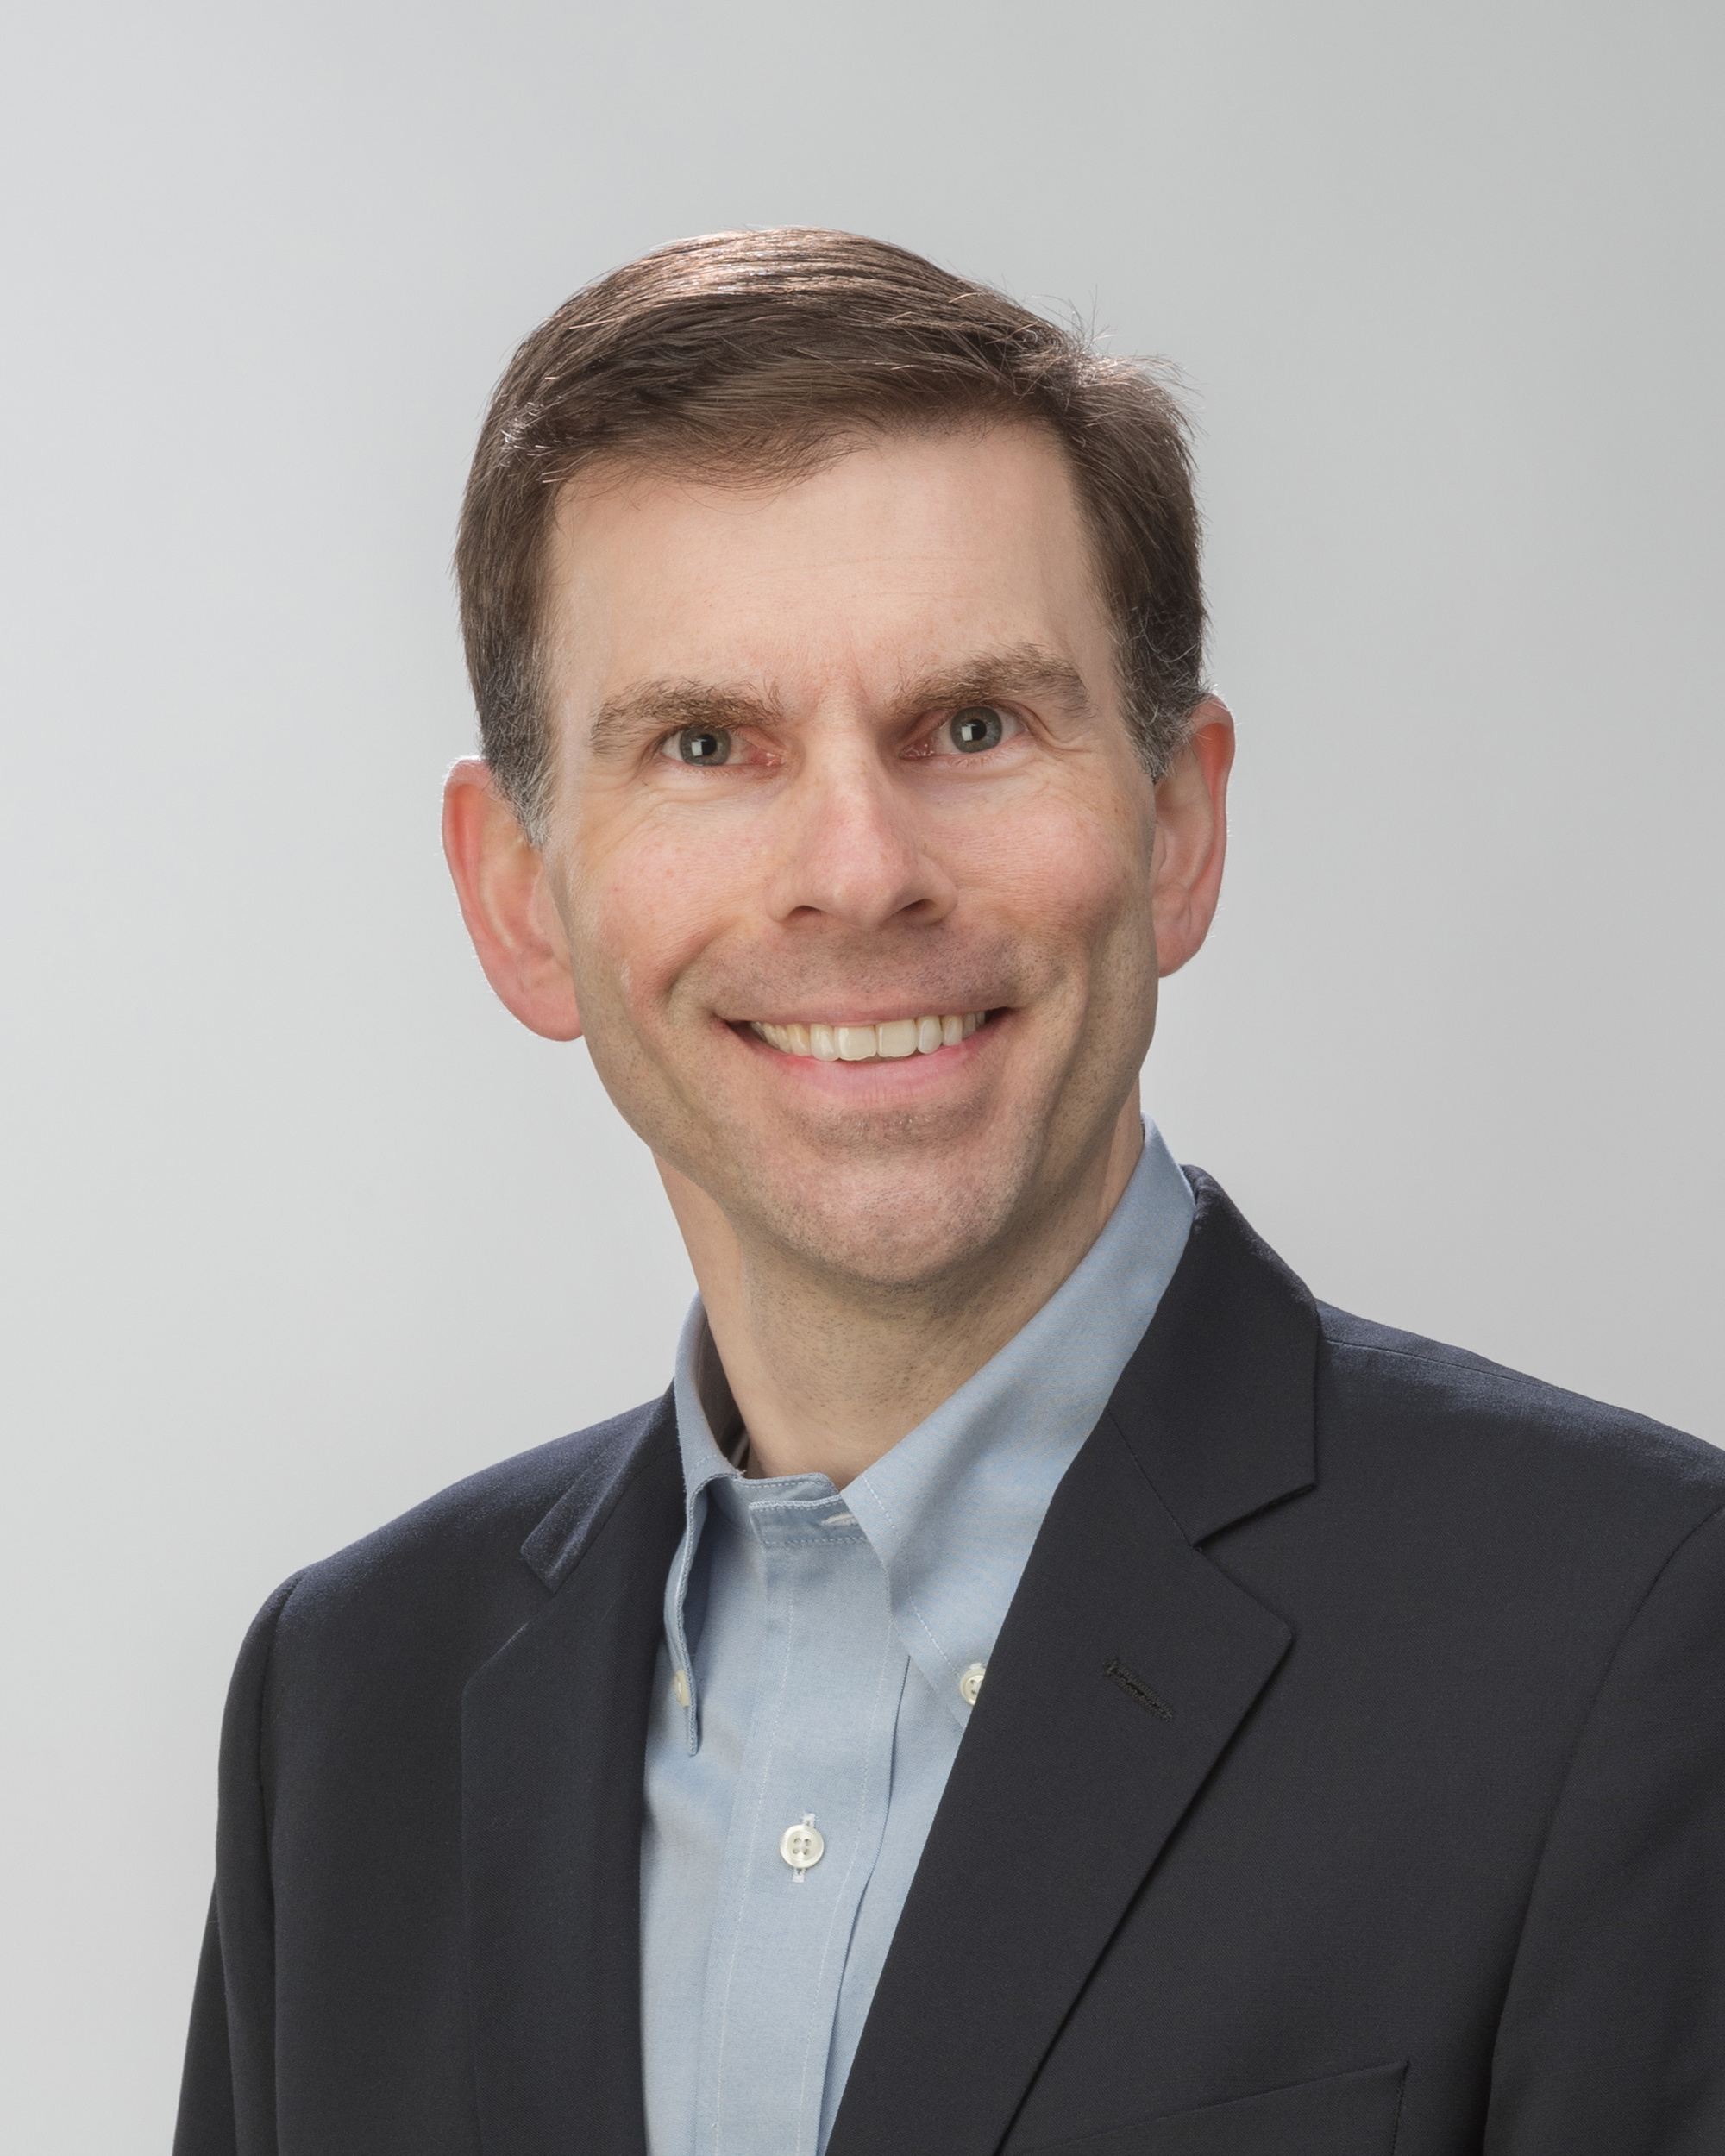 Ted Wentz III, CEO of Quadratec Inc., has been elected to the 2020-2021 SEMA Board of Directors in the Distributor/Retailer category.